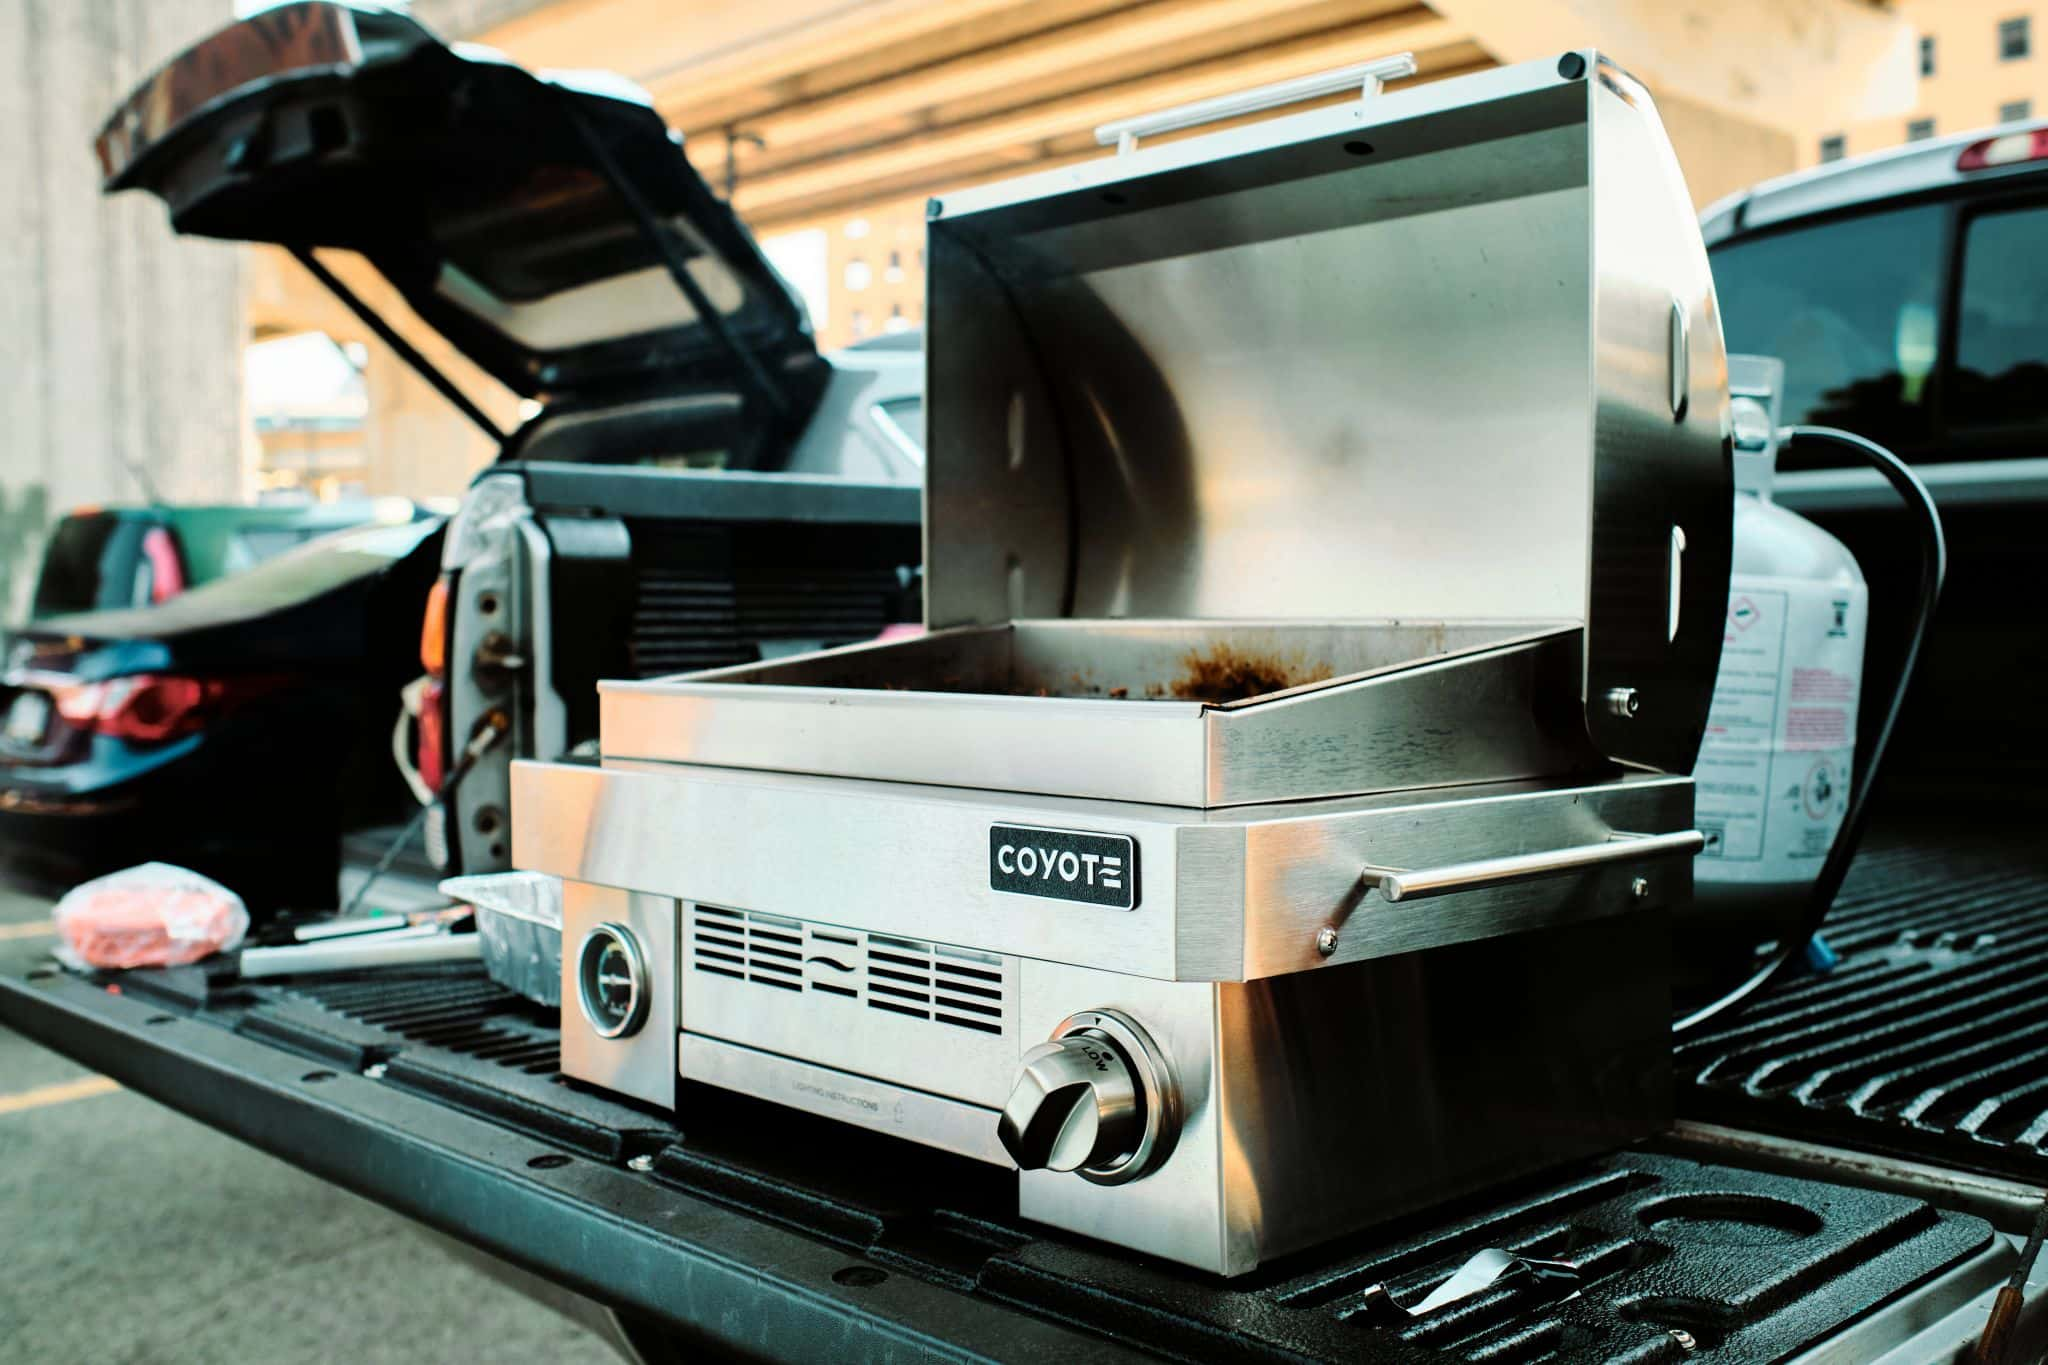 Coyote Portable Grill on a Truck Tailgate